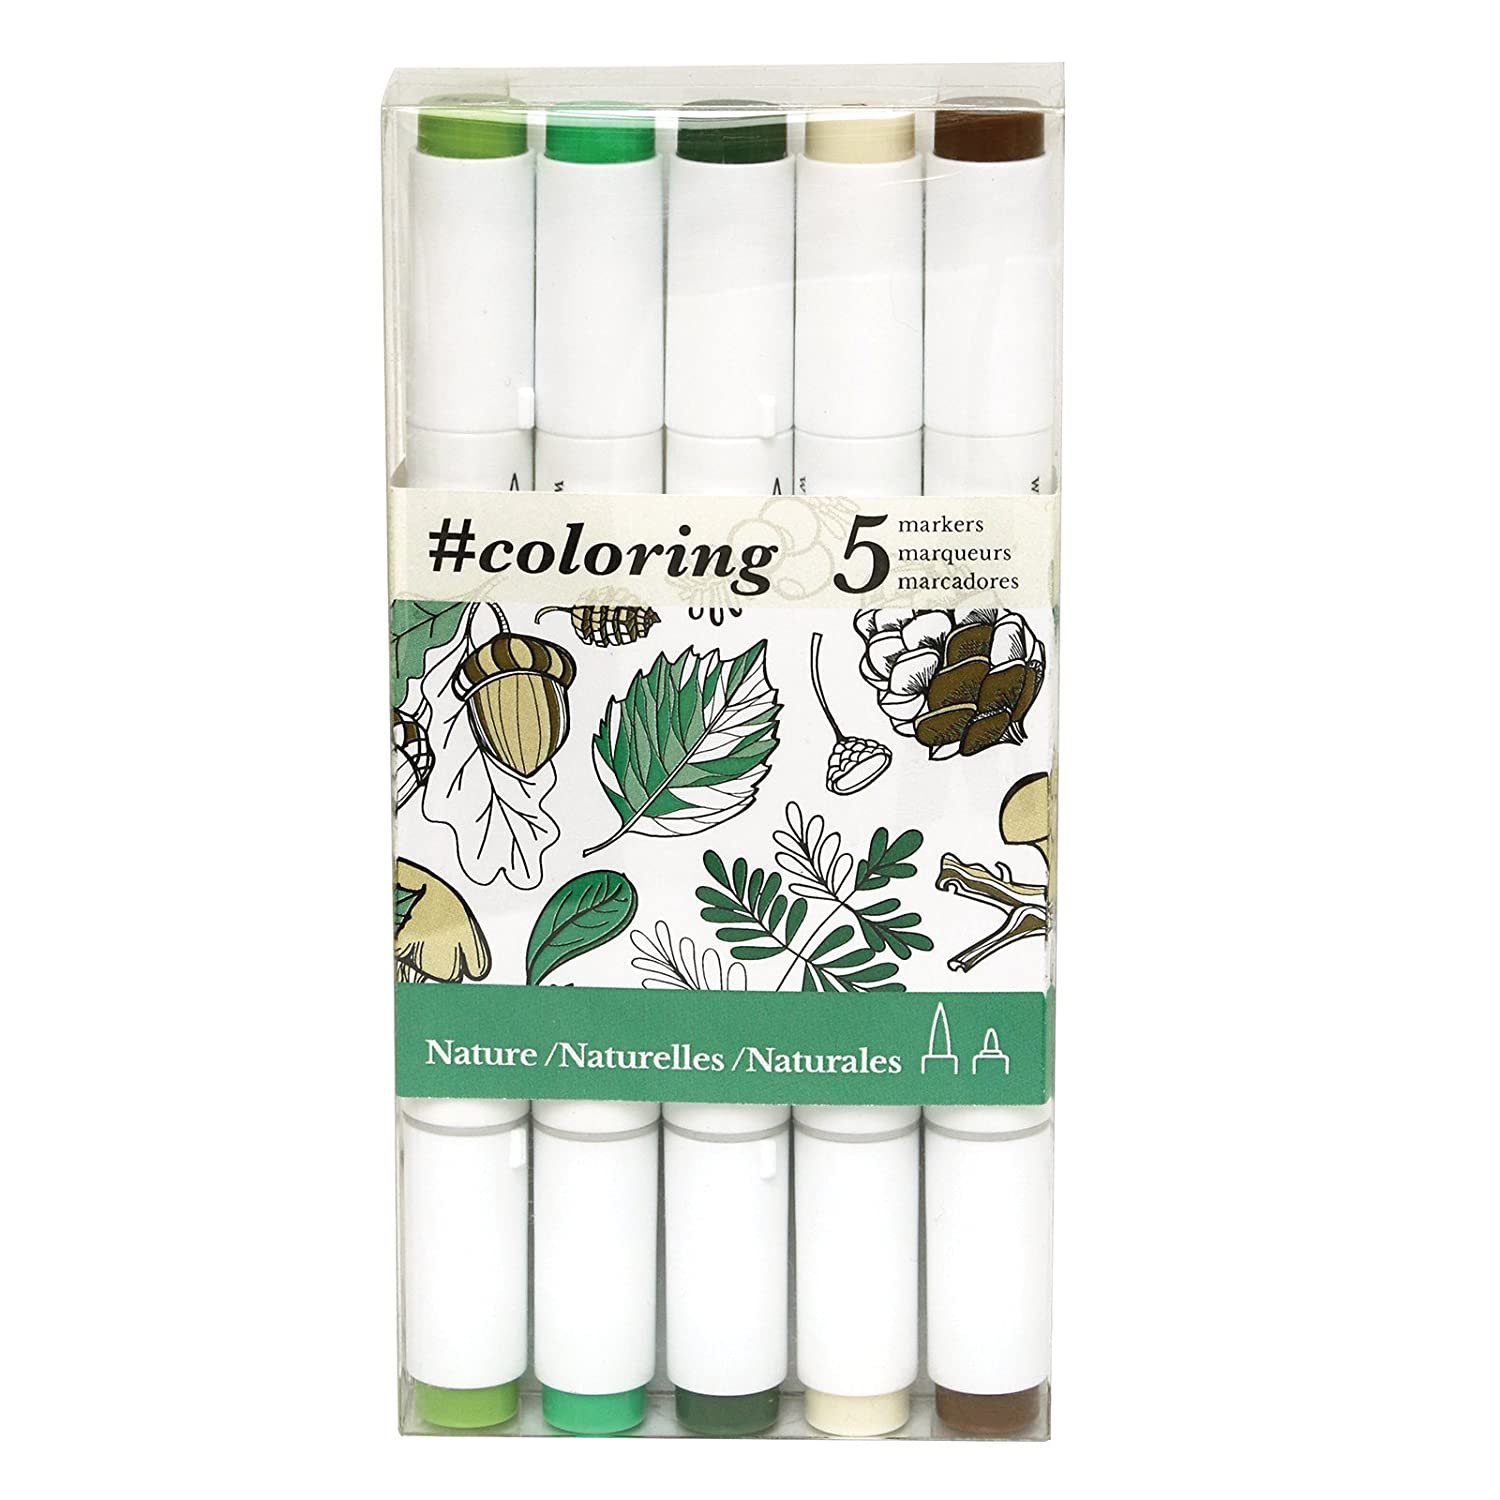 amazoncom art alternatives coloring professional alcohol based coloring markers 5 color sets ideal for the johanna basford coloring canvas range